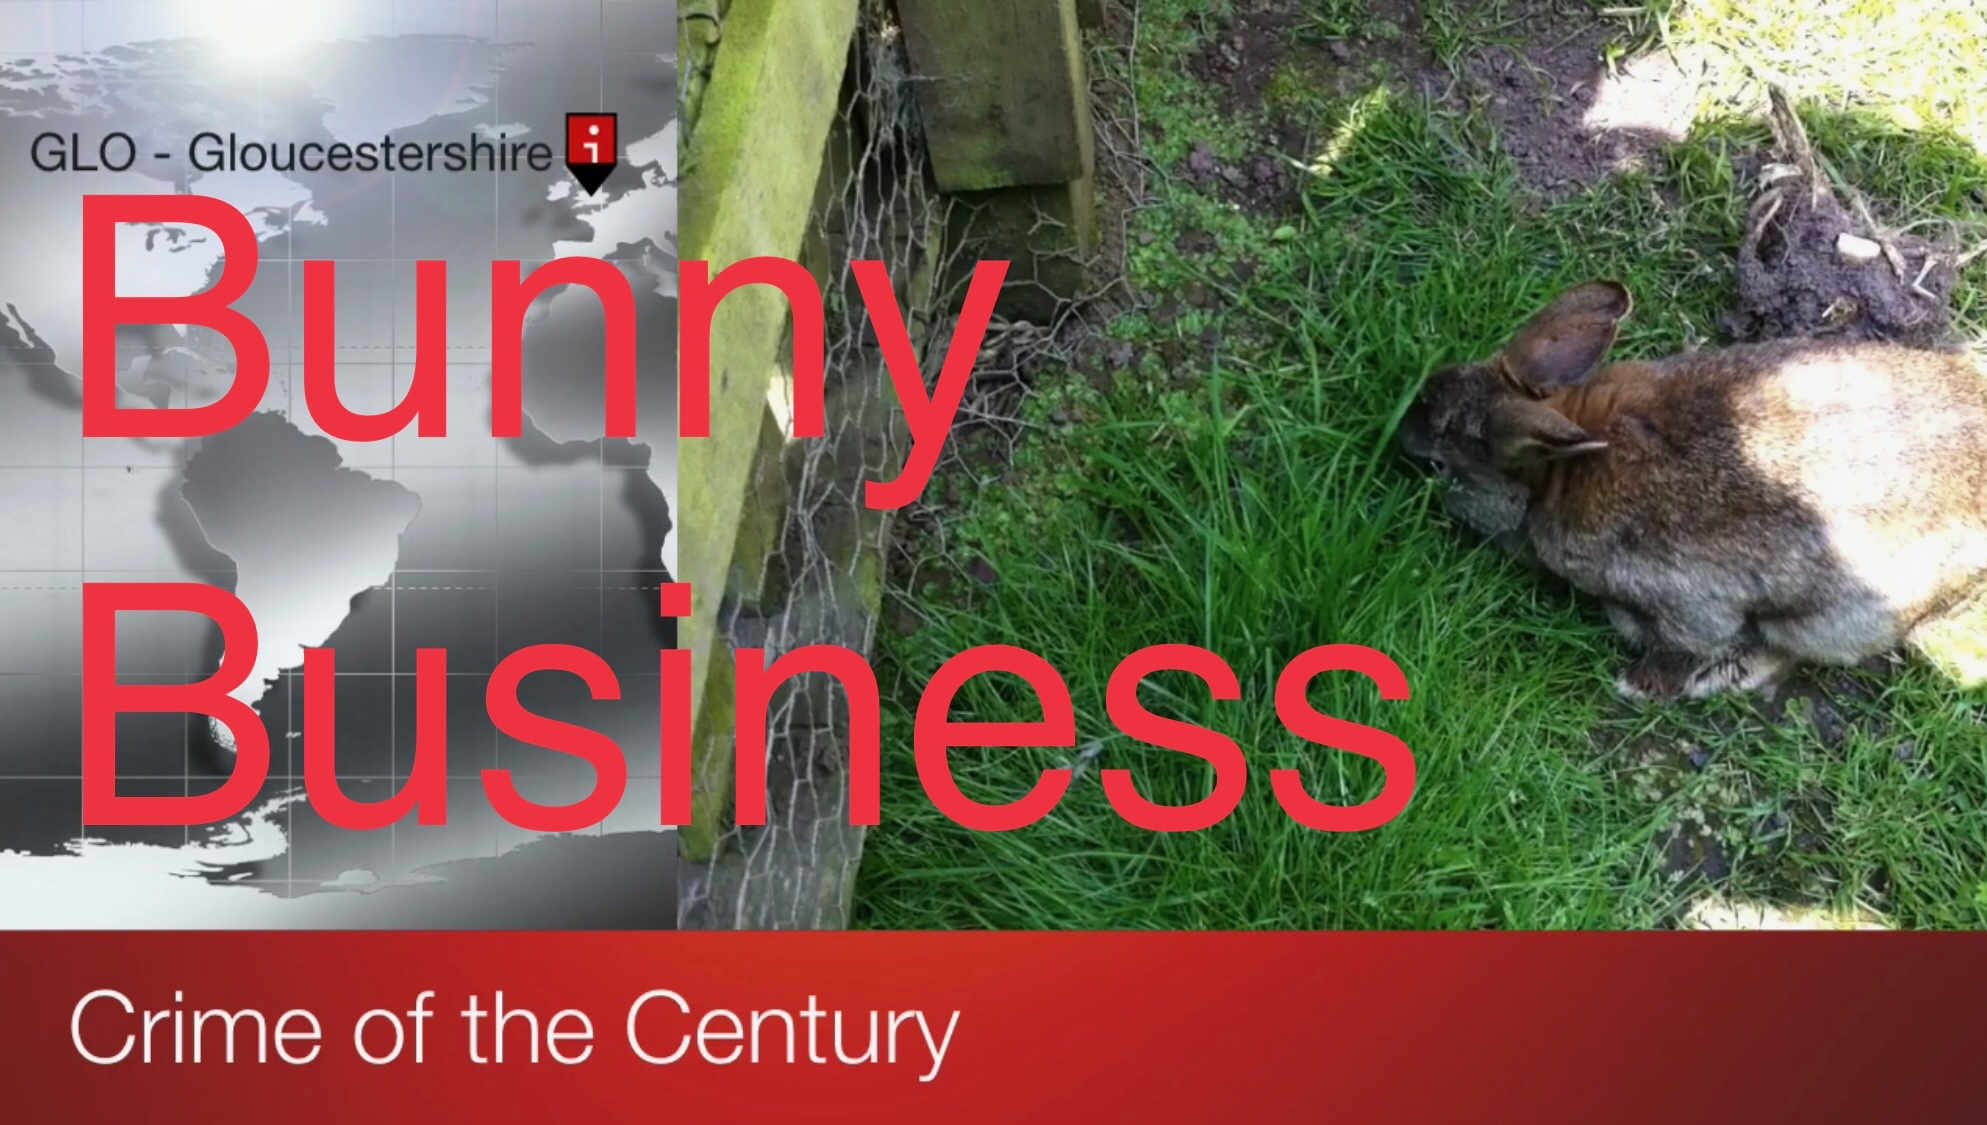 The title card from my short video showing a large scale map and picture of a rabbit with the title Crime of the Century